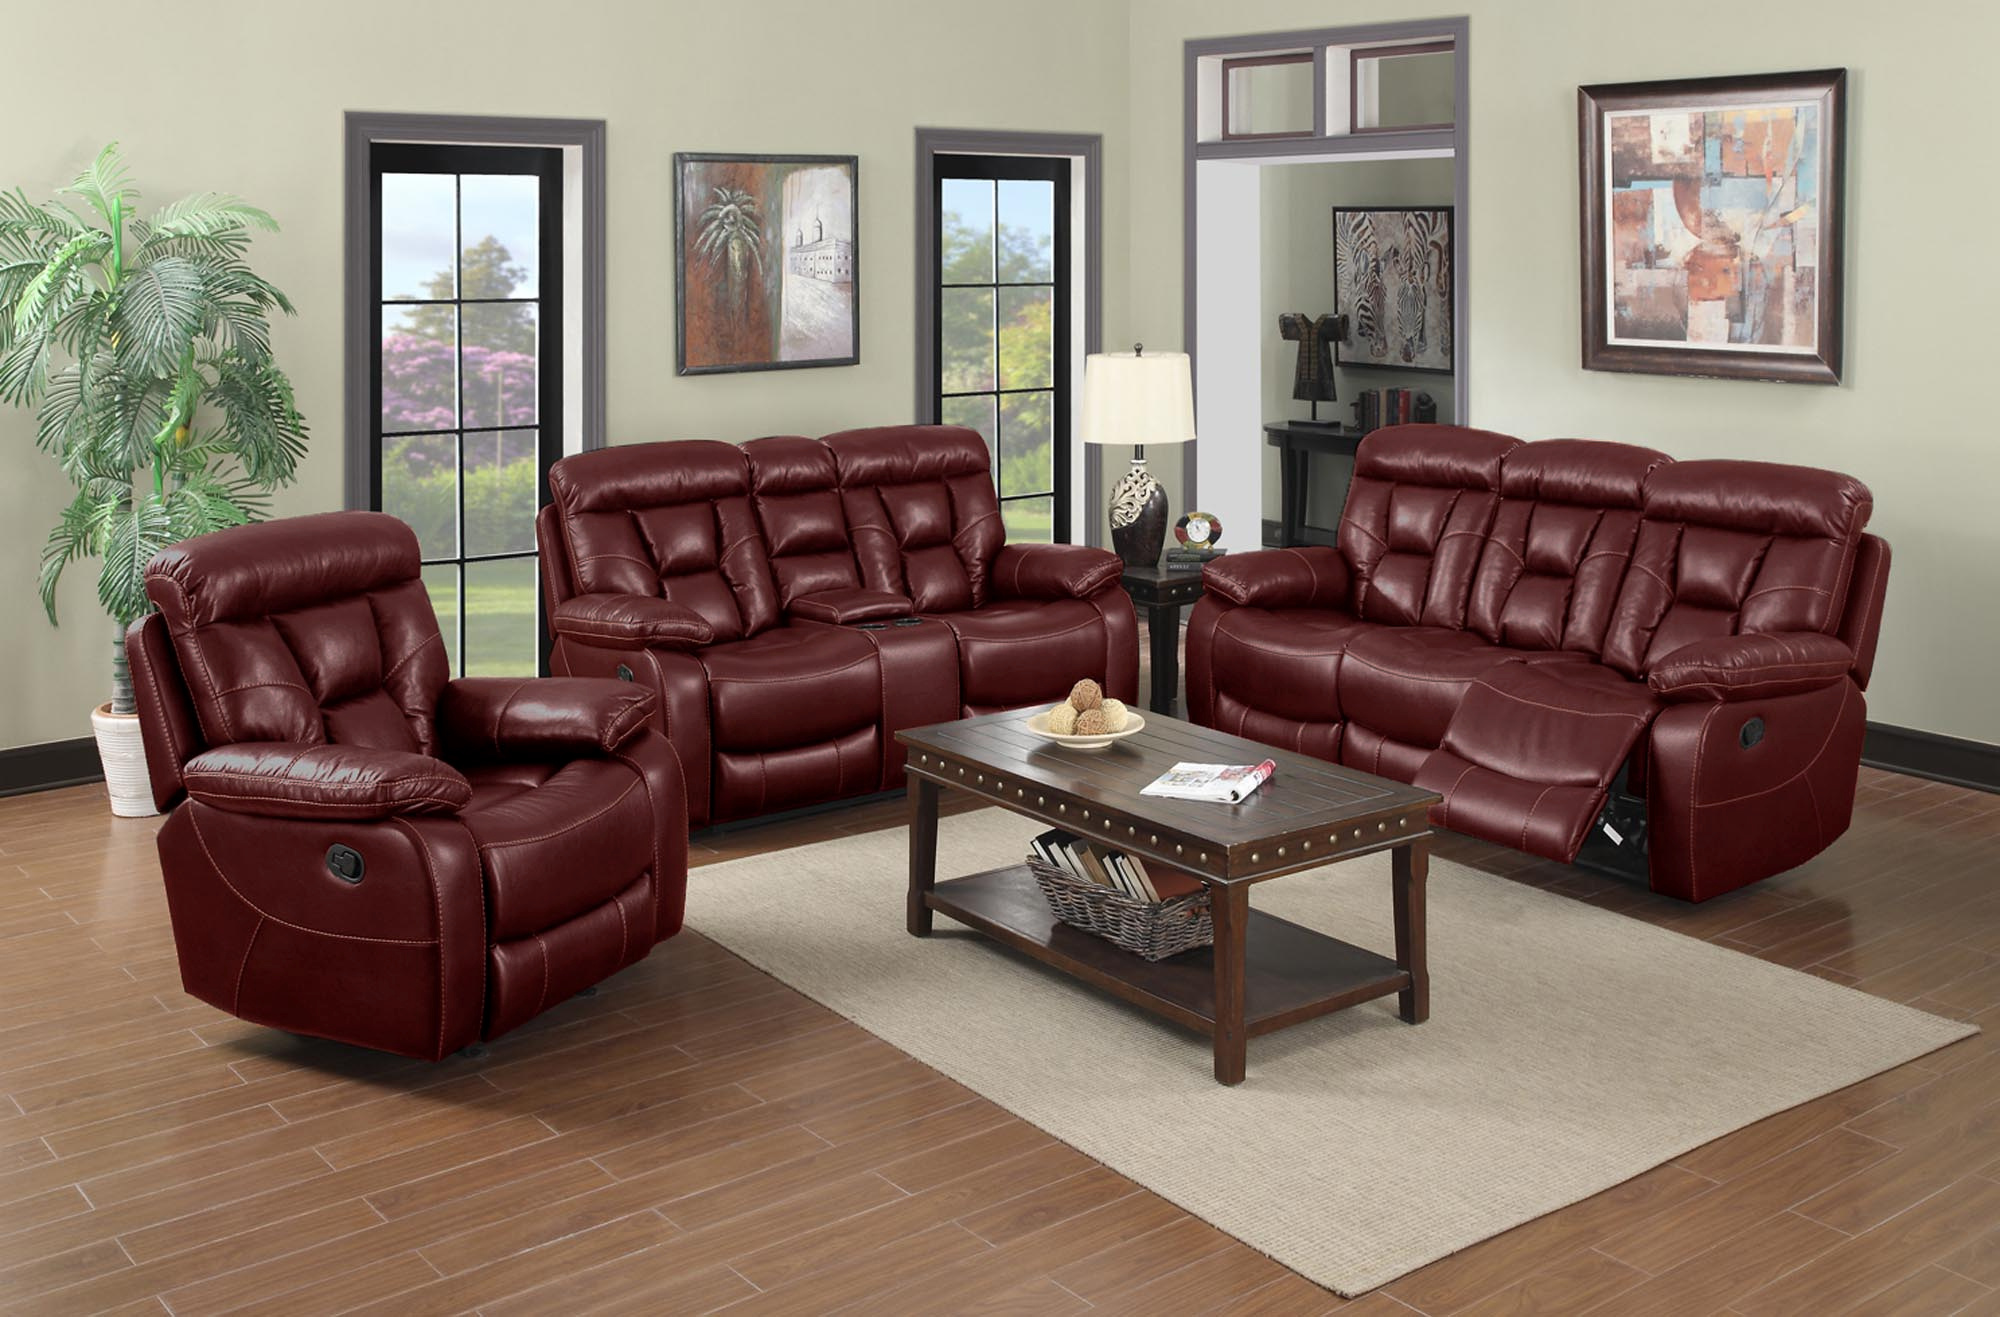 Red Faux Leather Reclining Living Room Set